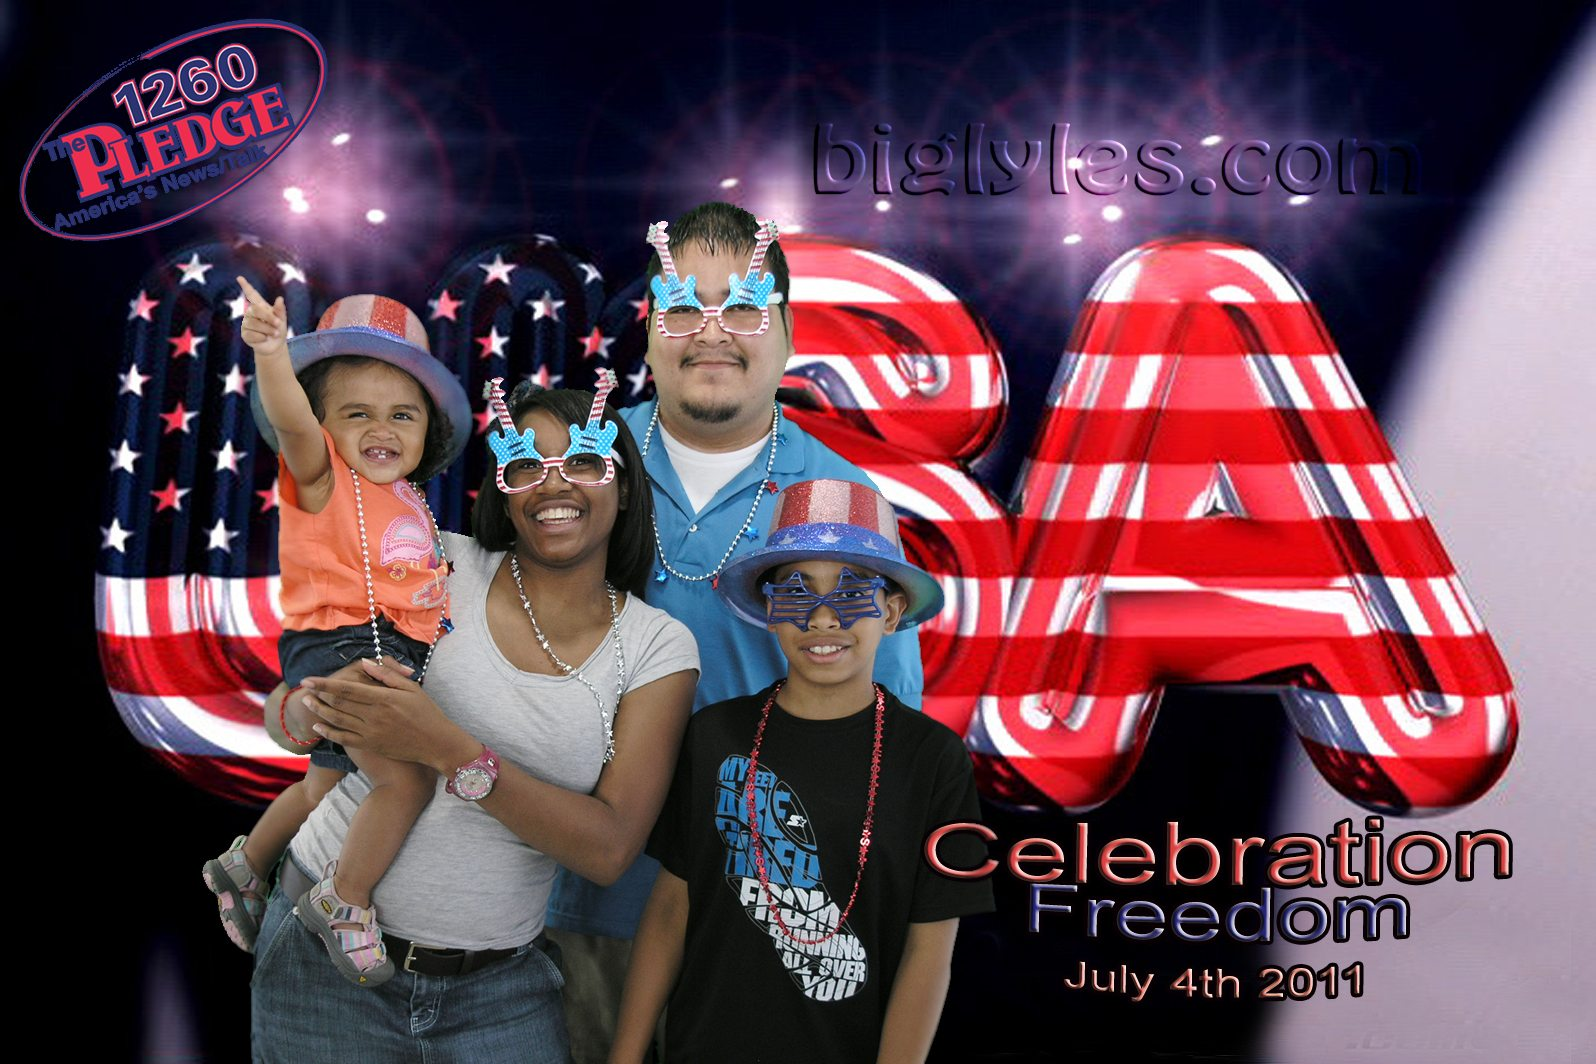 Family 4th of July celebration photo